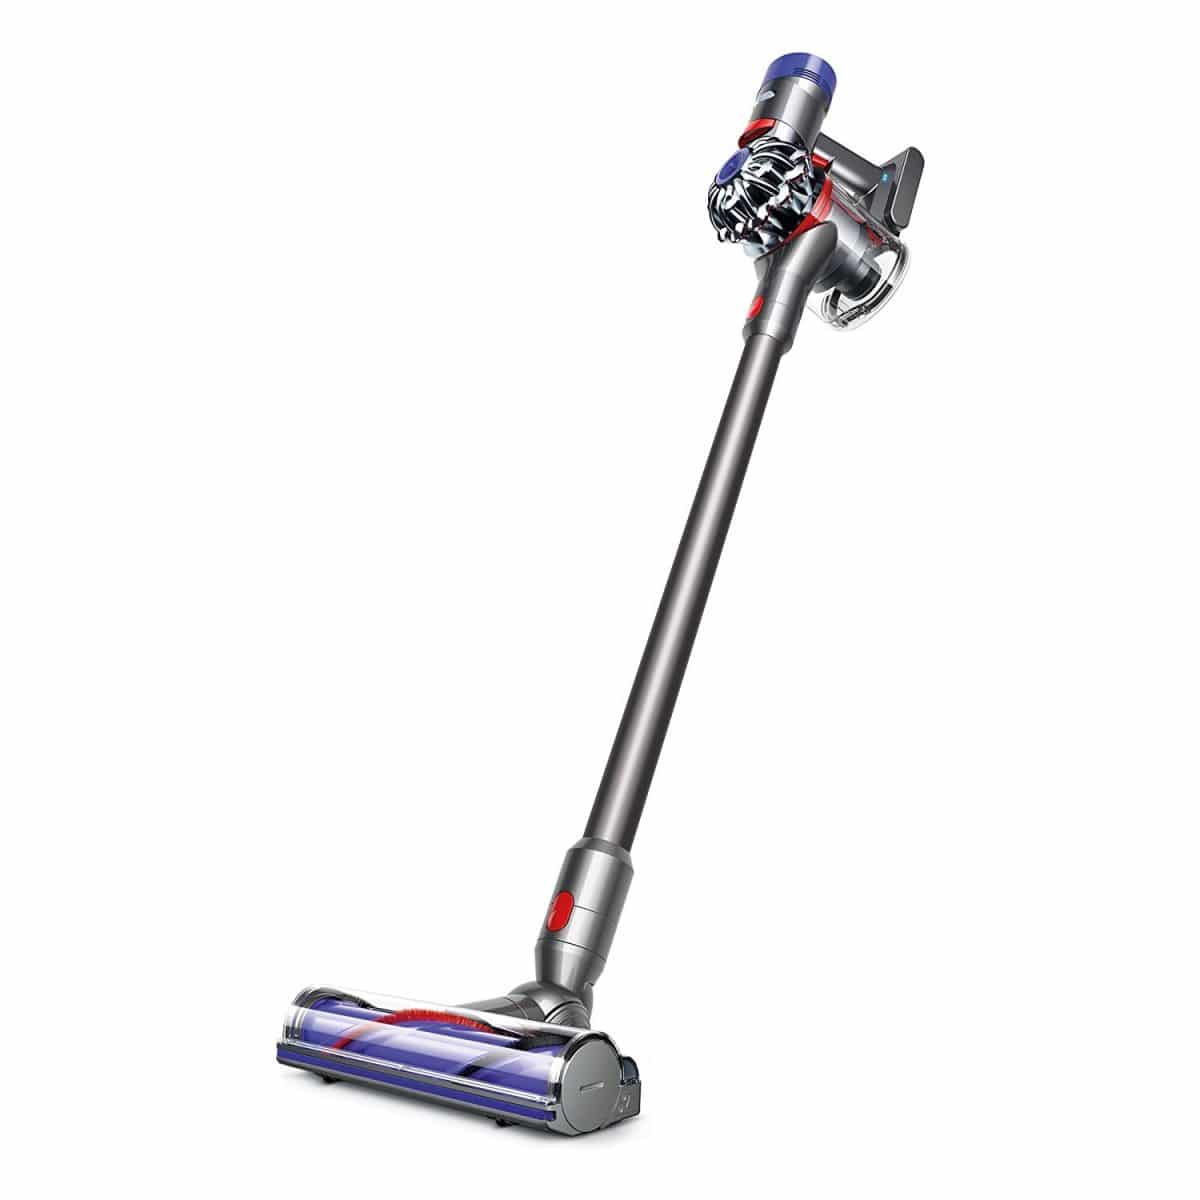 Best Price to Date! Dyson V7 Animal Cordless Vacuum on Amazon